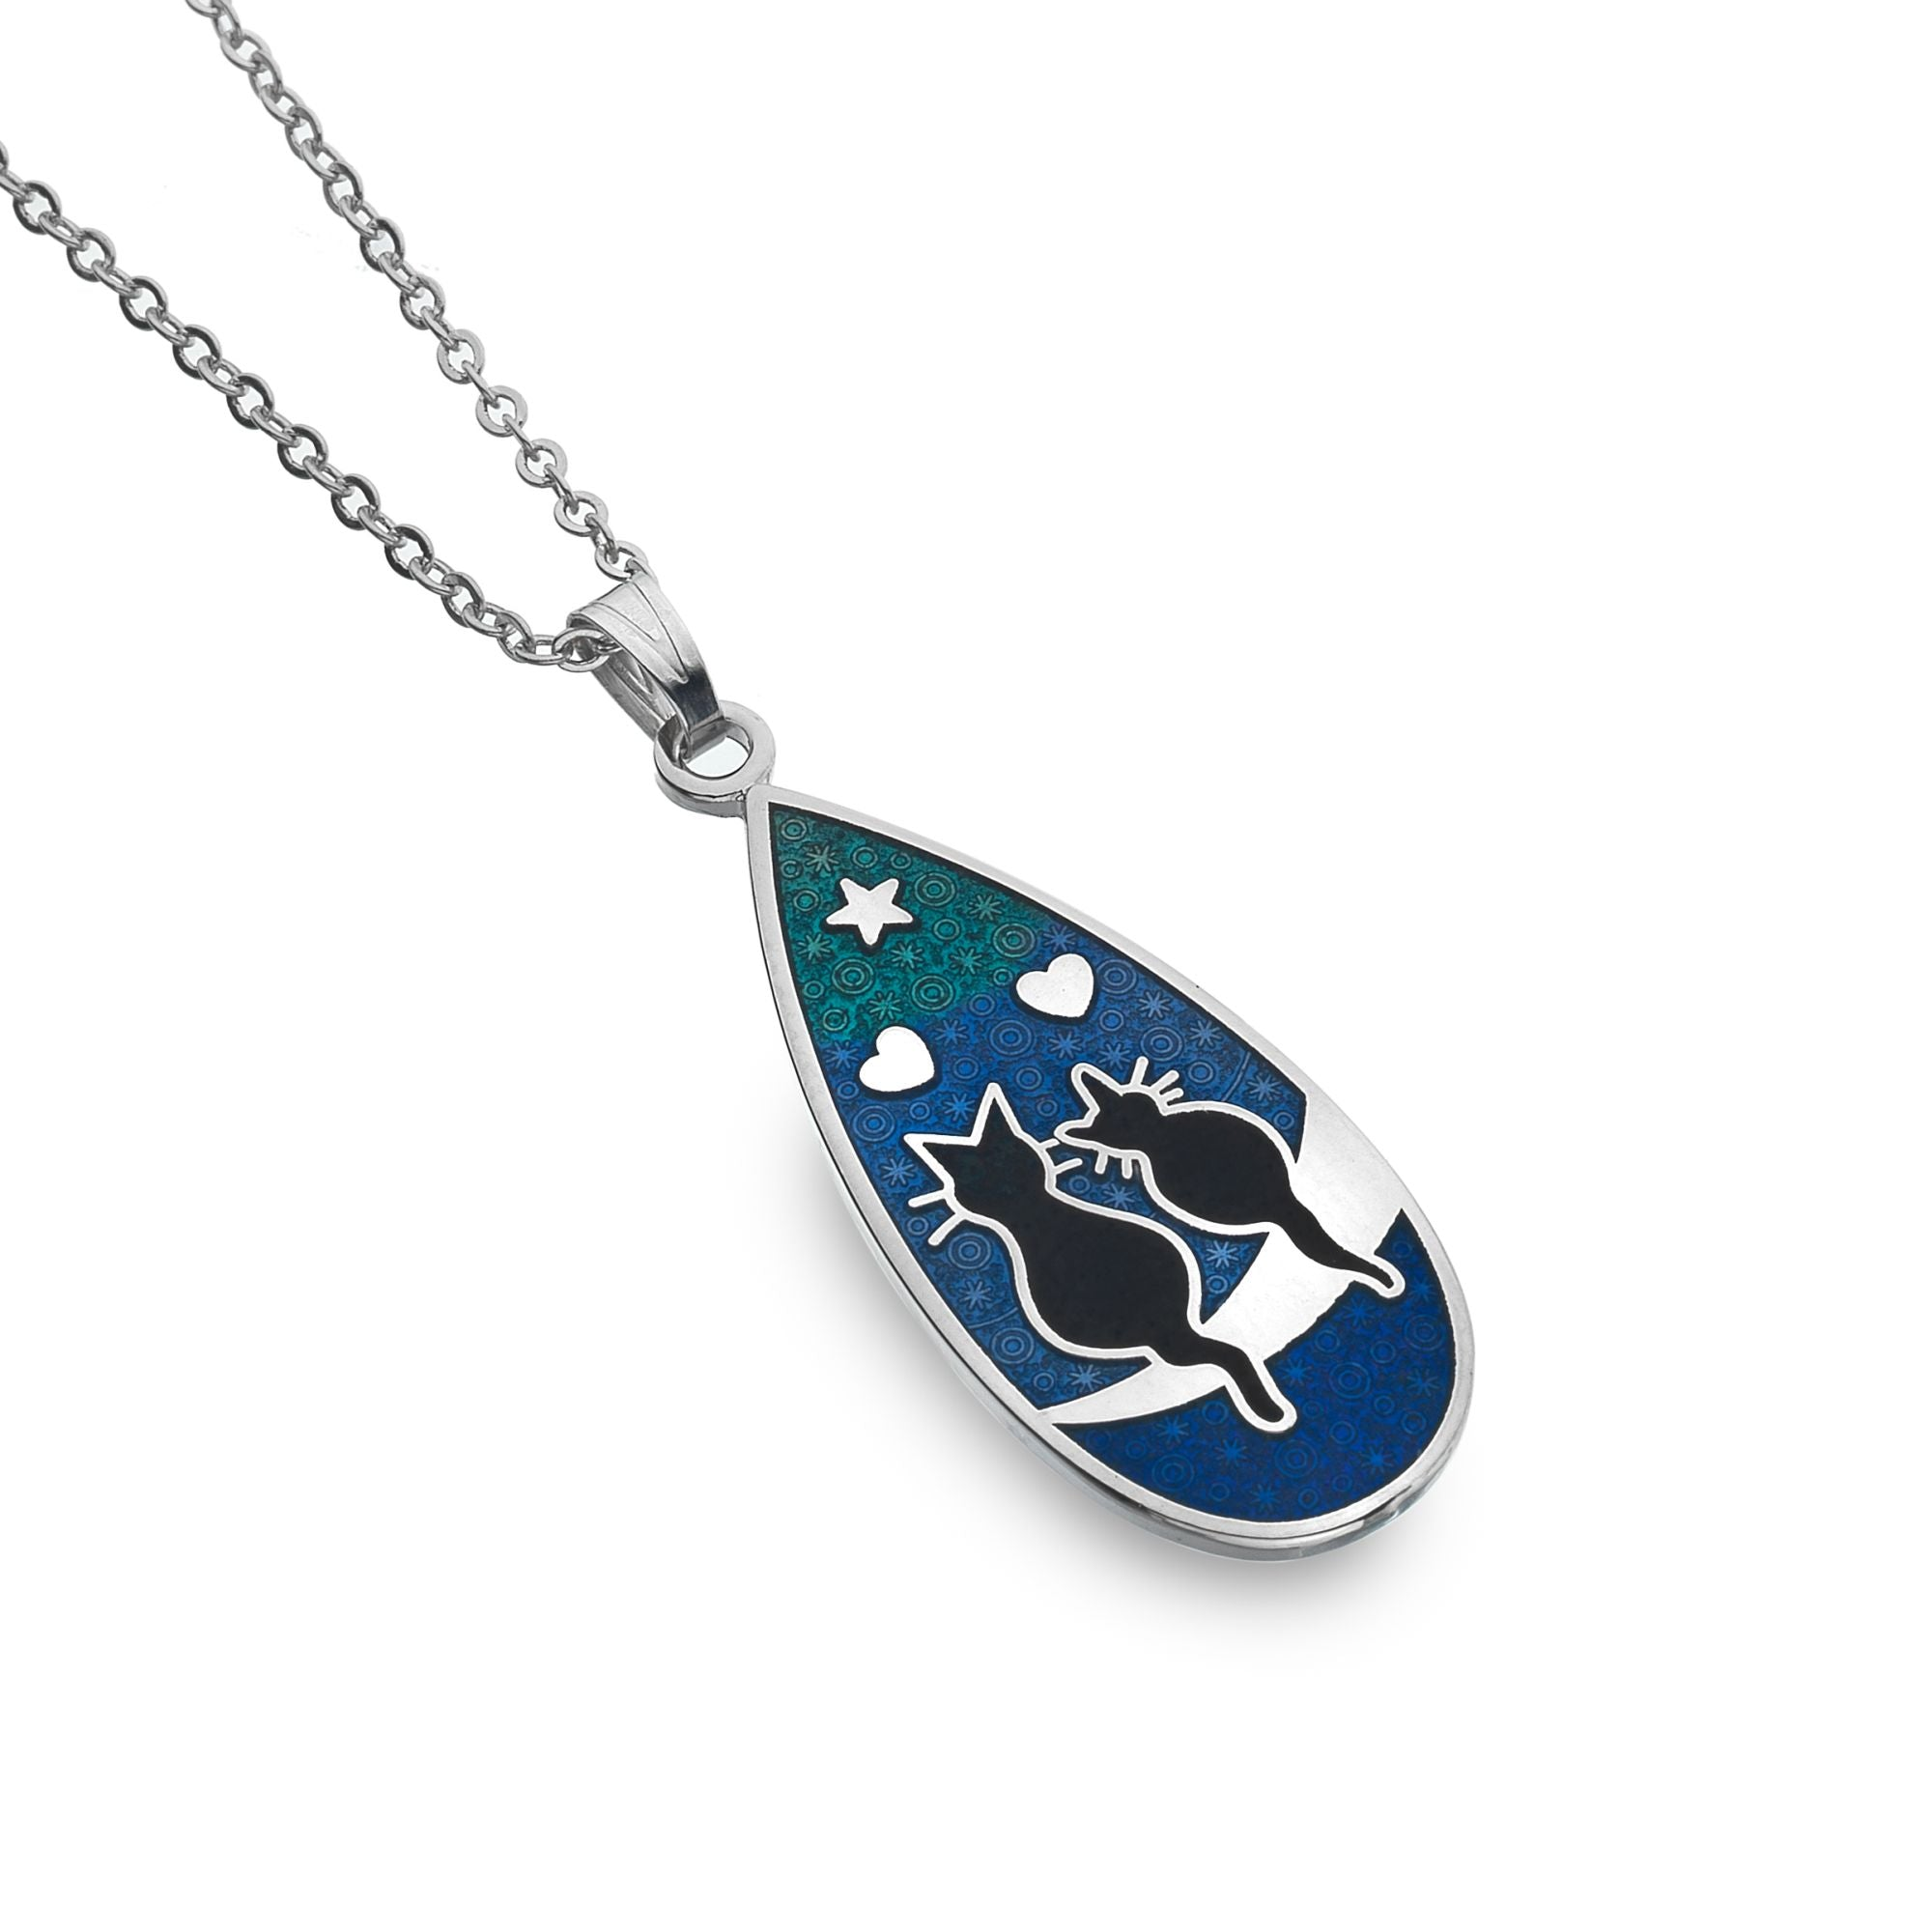 Love Cats Enamel Teardrop Necklace